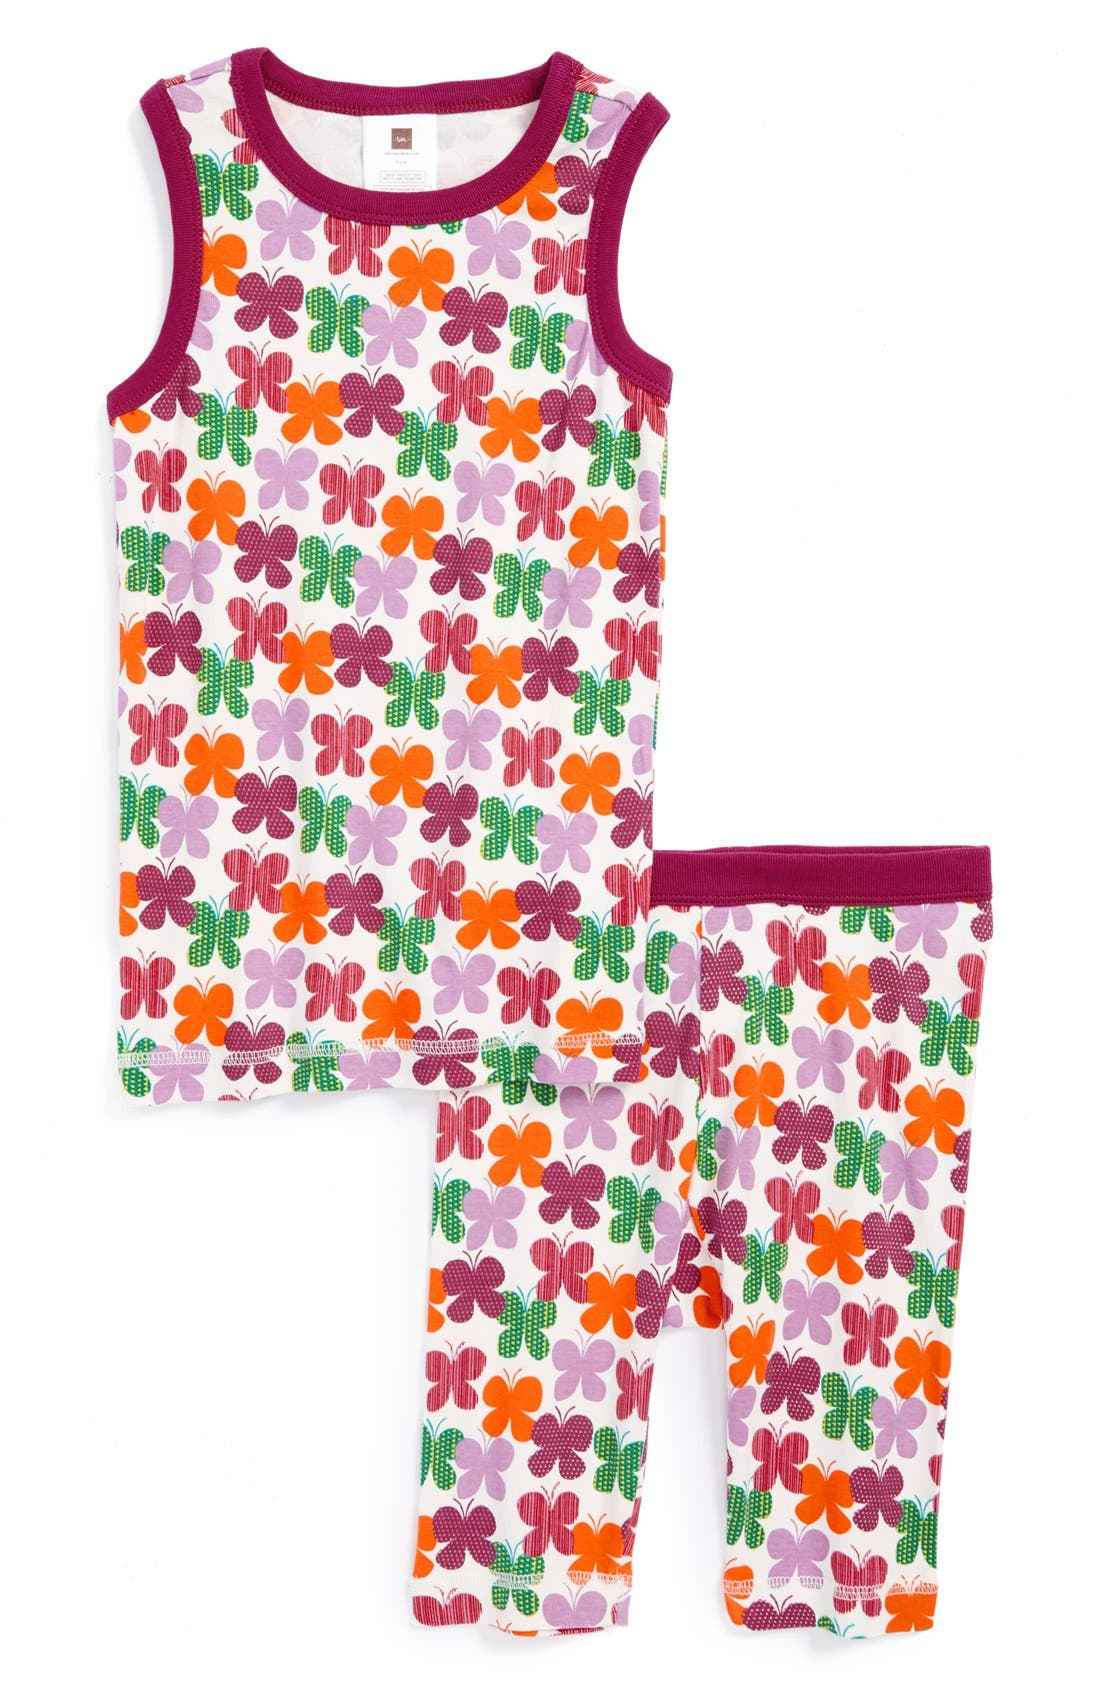 Alternate Image 1 Selected - Tea Collection 'Swirling Butterflies' Two-Piece Fitted Pajamas (Little Girls & Big Girls)